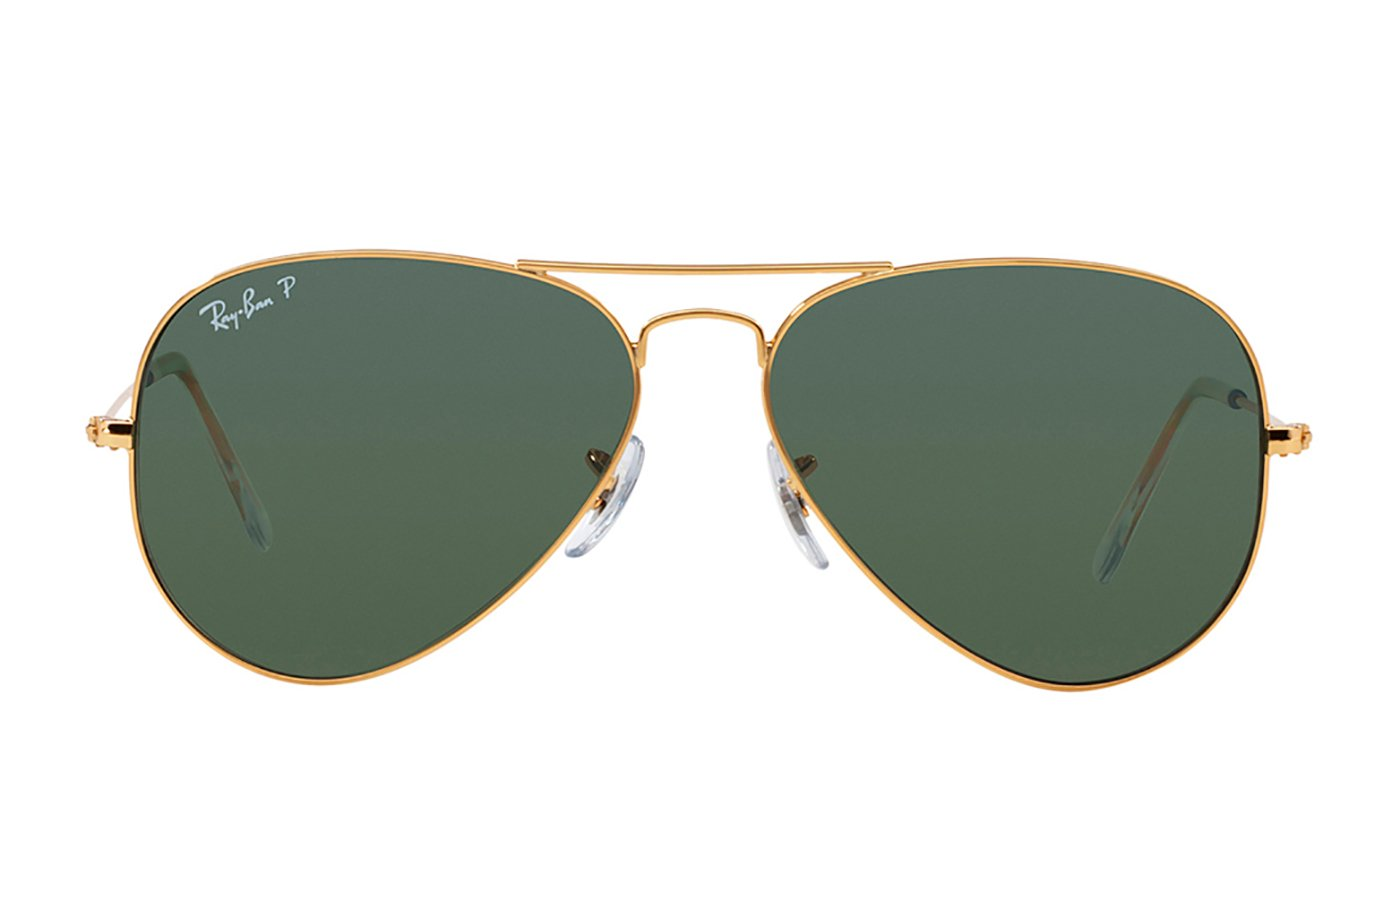 RAY-BAN AVIATOR LARGE METAL 0RB3025 58 001/58 GOLD POLARIZADA